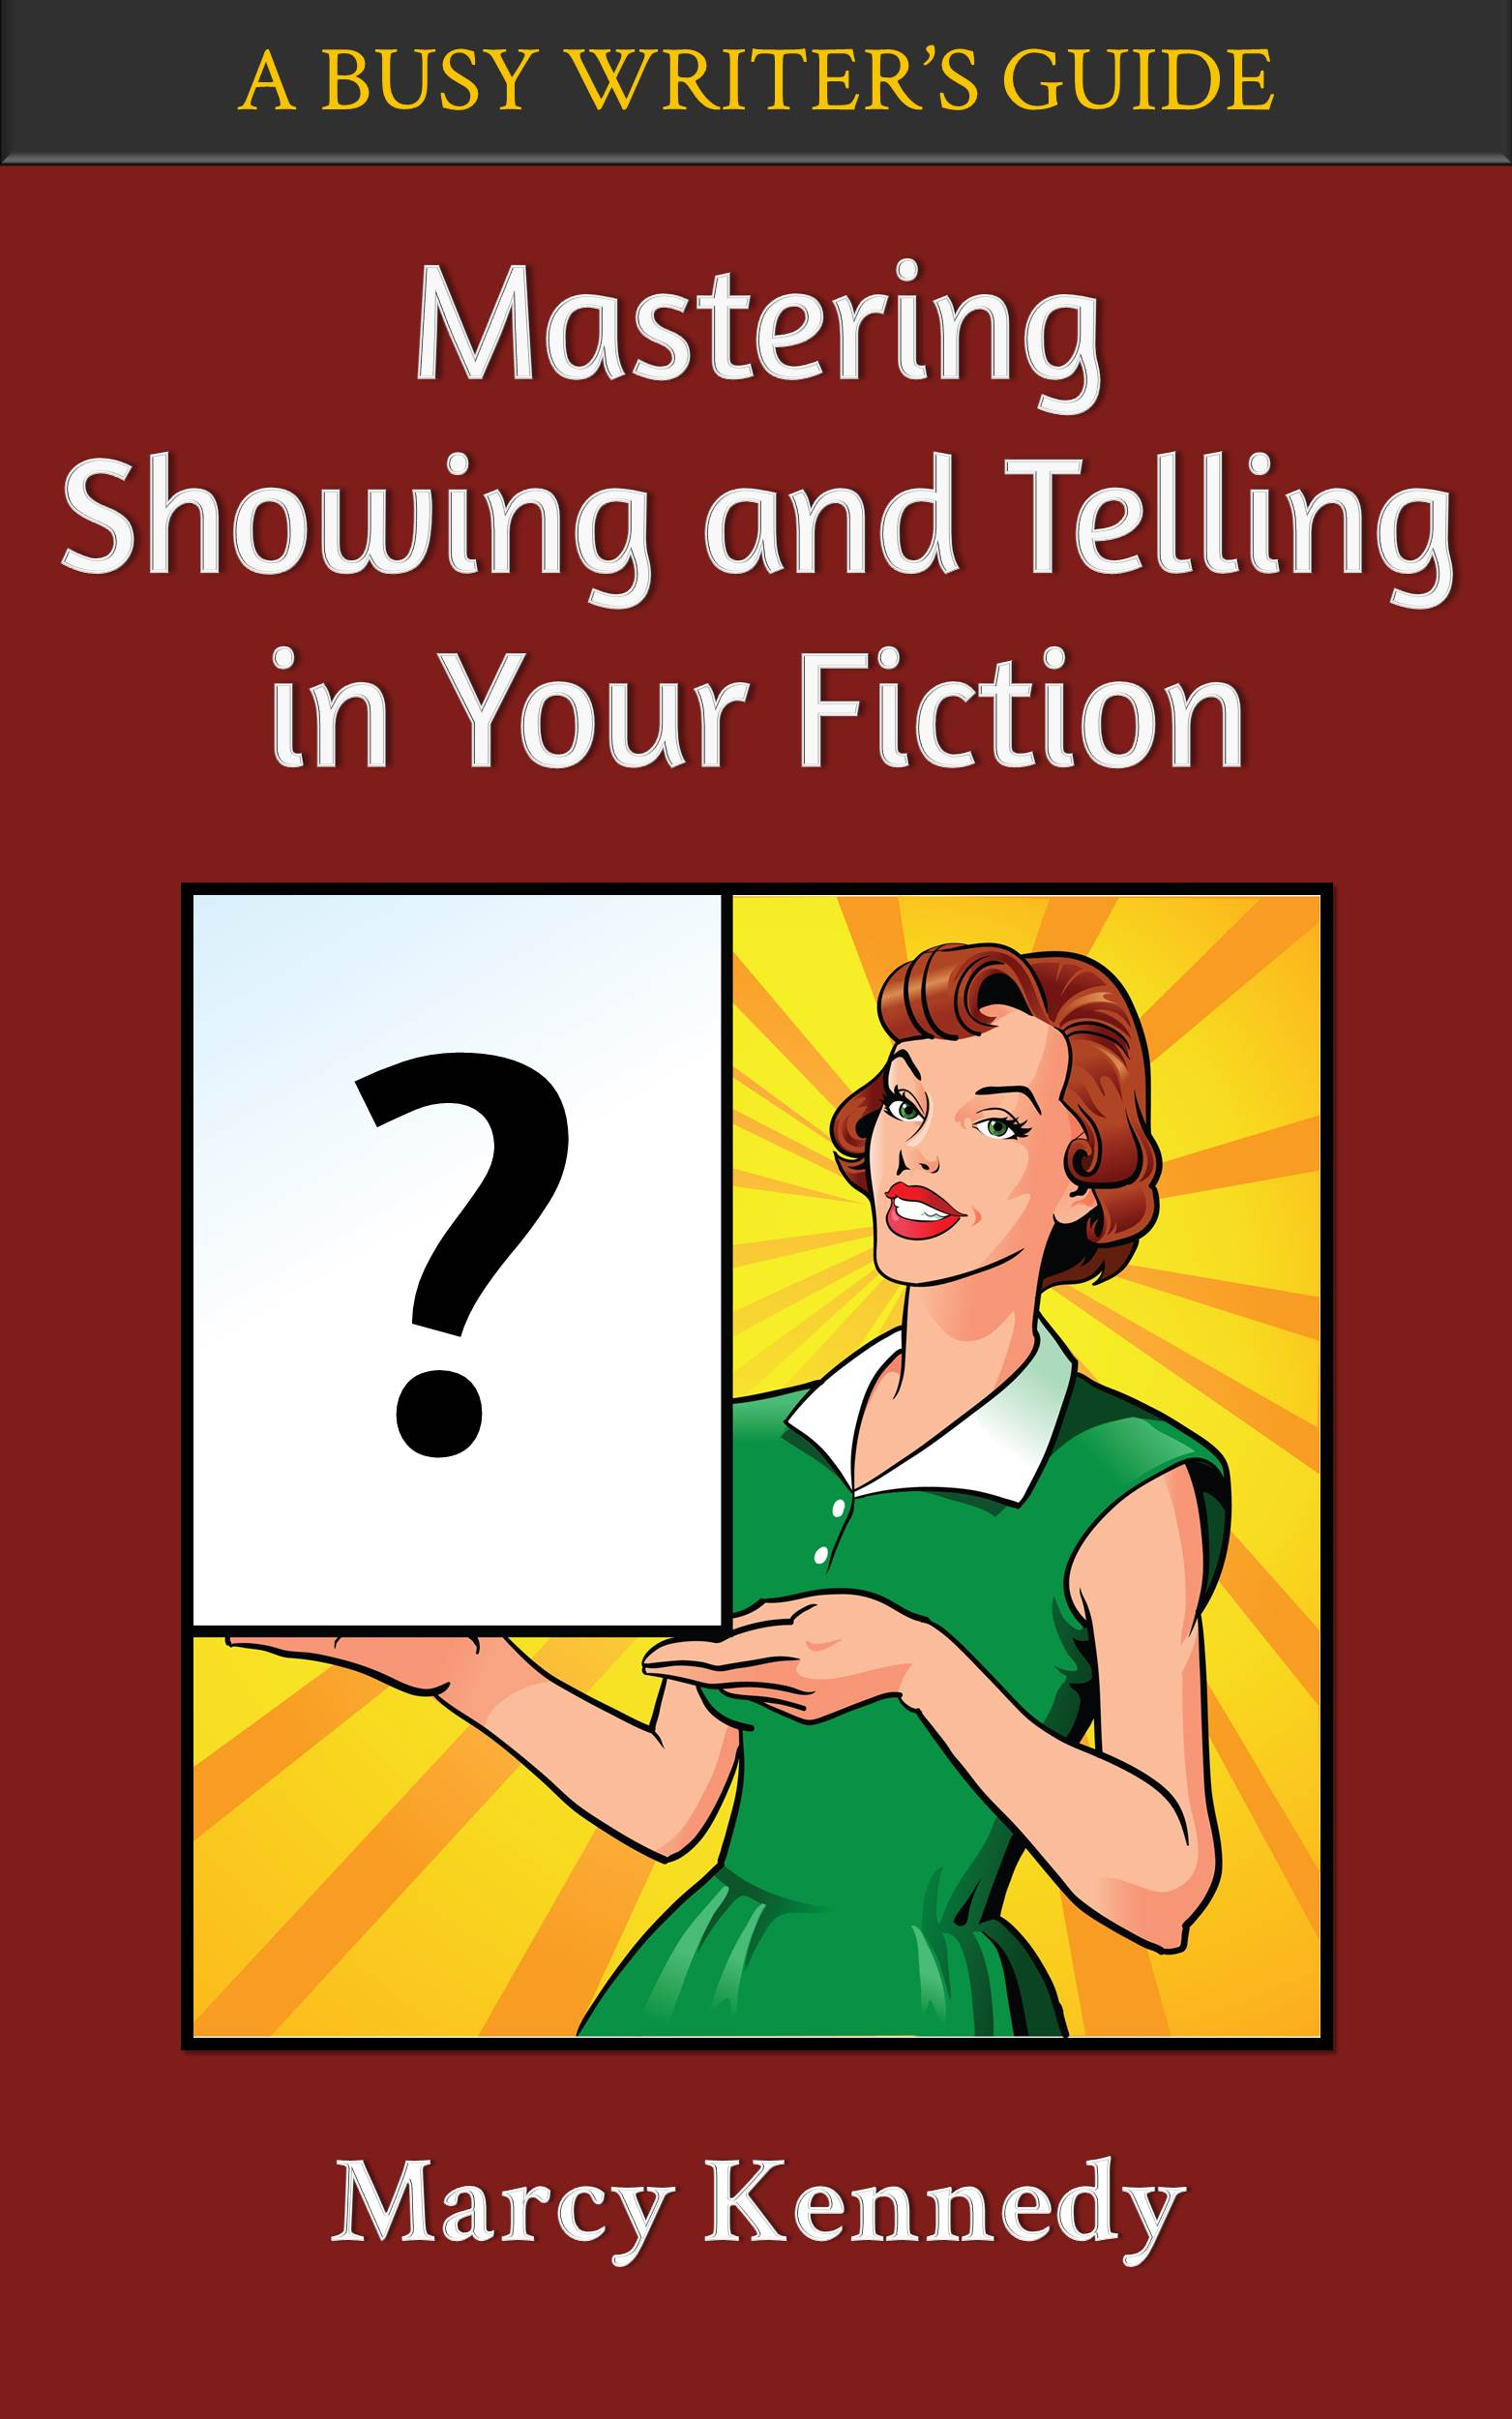 Mastering Showing and Telling in Your Fiction by Marcy Kennedy